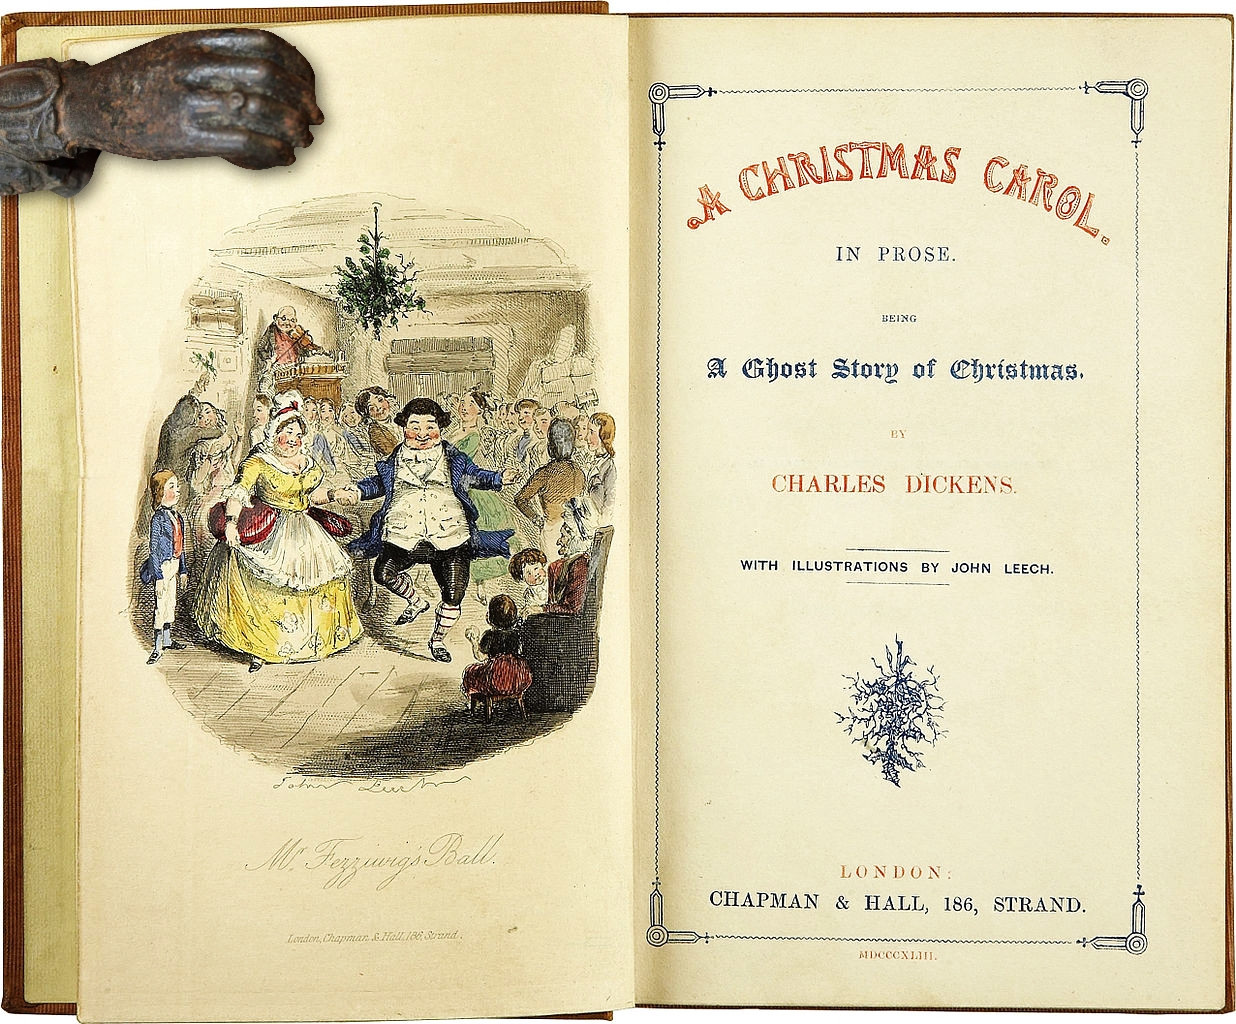 A Christmas Carol by Charles Dickens. In Prose. Being a Ghost Story of Christmas. With Illustrations by John Leech. Chapman & Hall, London, 1843. First edition. Title page.